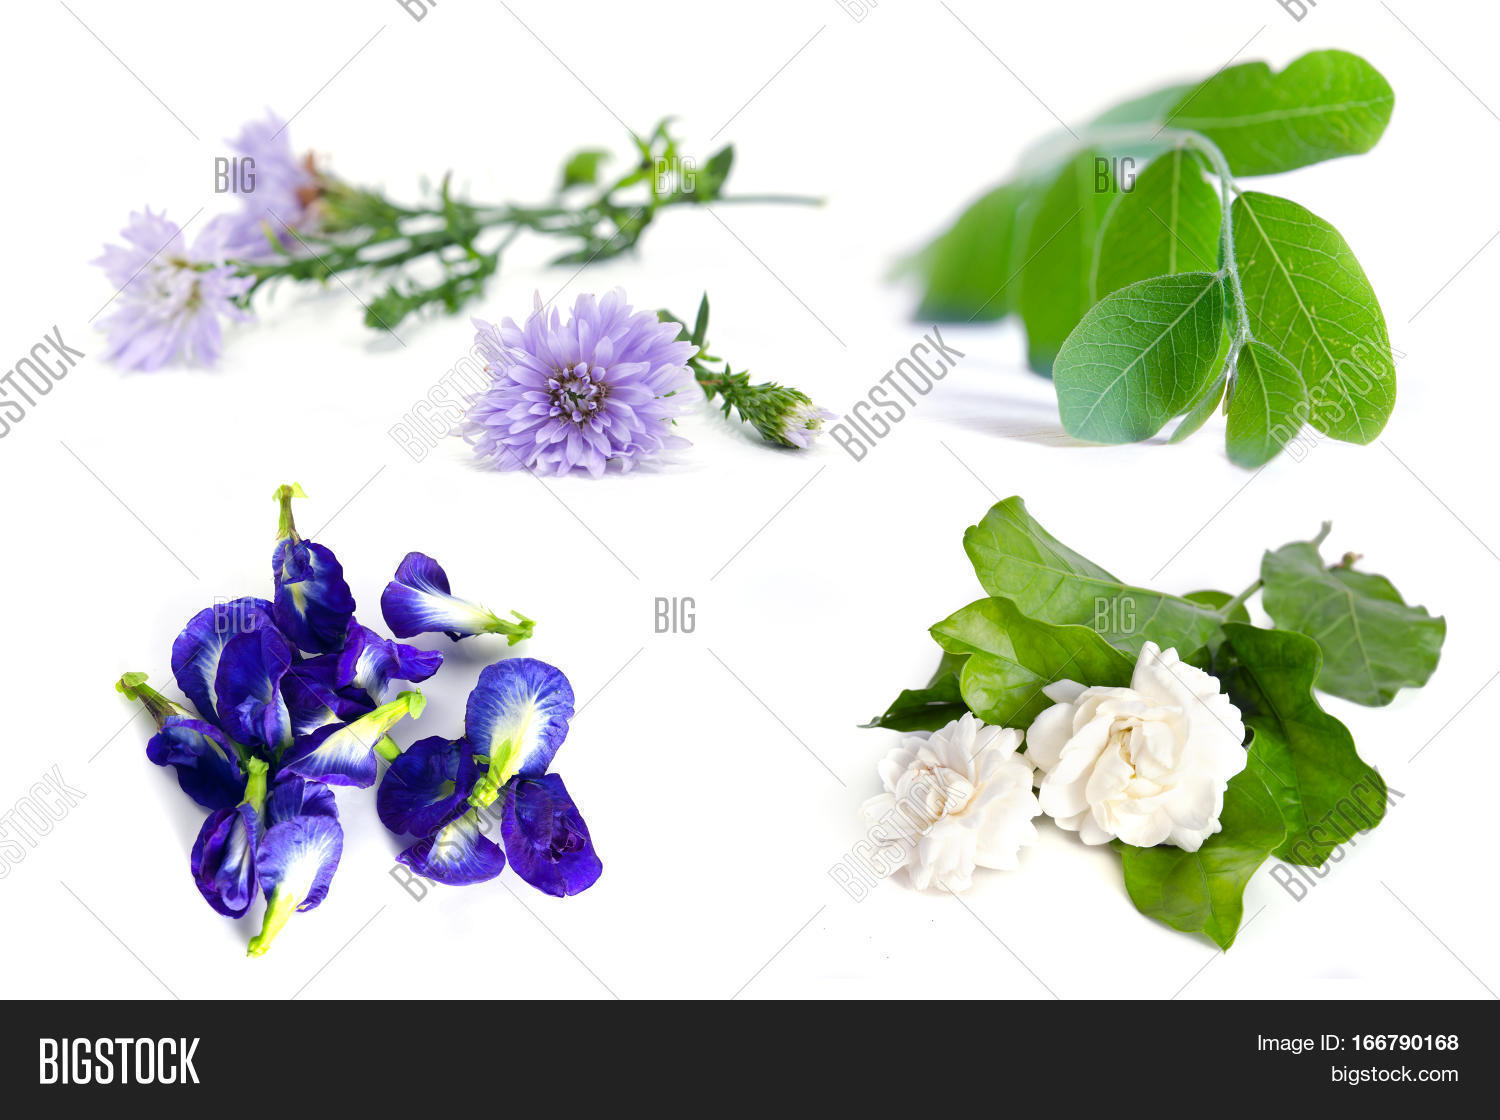 Group plant flower image photo free trial bigstock group of plant and flower moringa plant leaf jasmine flower butterfly pea blue pea and izmirmasajfo